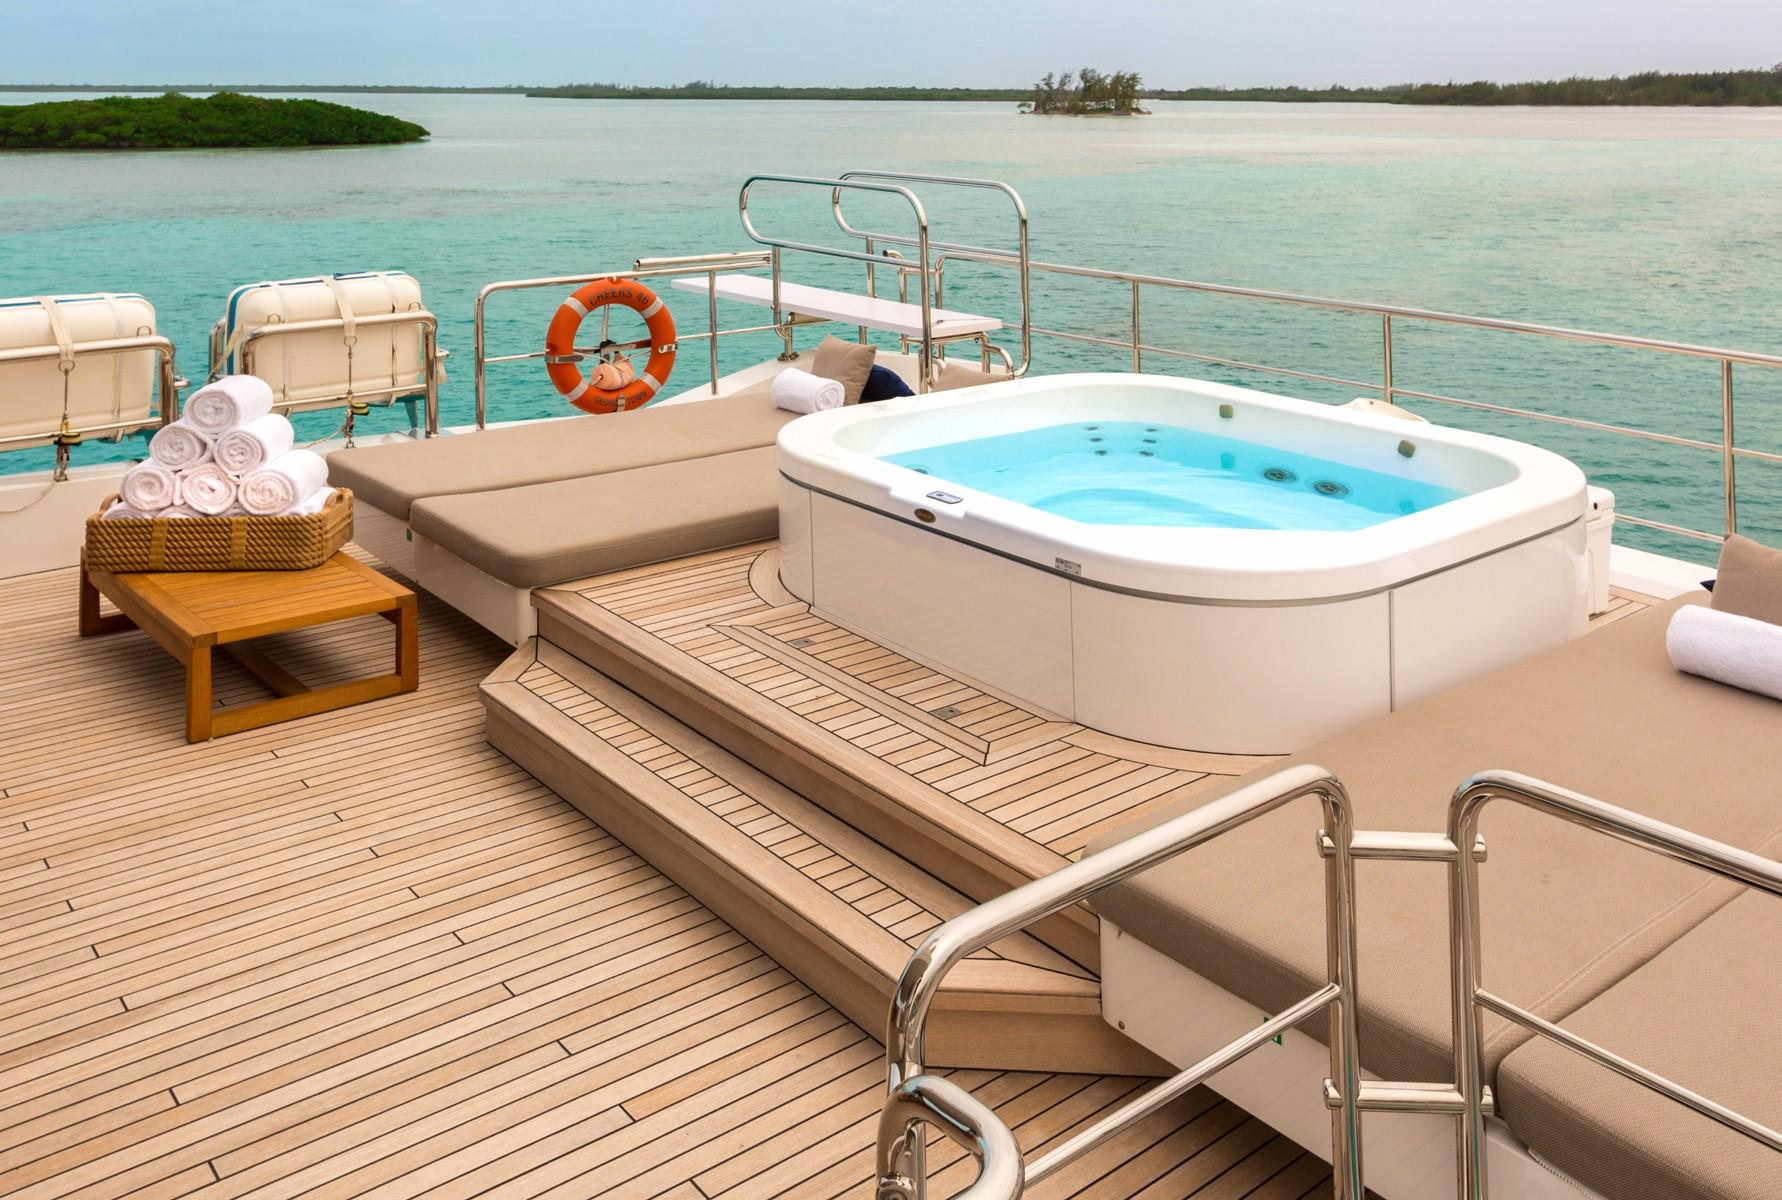 2014 Benetti Veloce 140 Yacht For Sale In Fort Lauderdale Fl Cheers 46